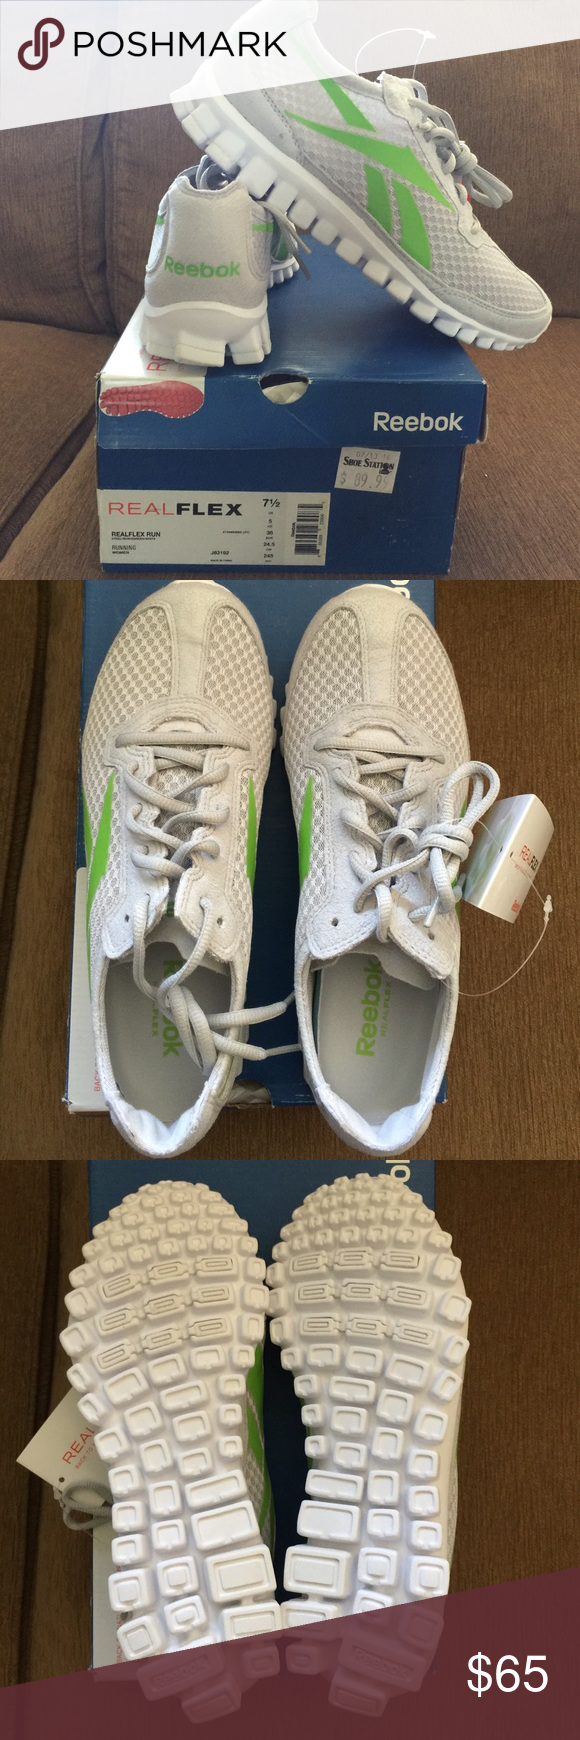 NEW Reebok RealFlex original running sneakers ✨ New with tags ✨ Never worn!!  ✨Light grey suede   mesh Reebok RealFlex running sneakers with green logo . 27f9e1d56